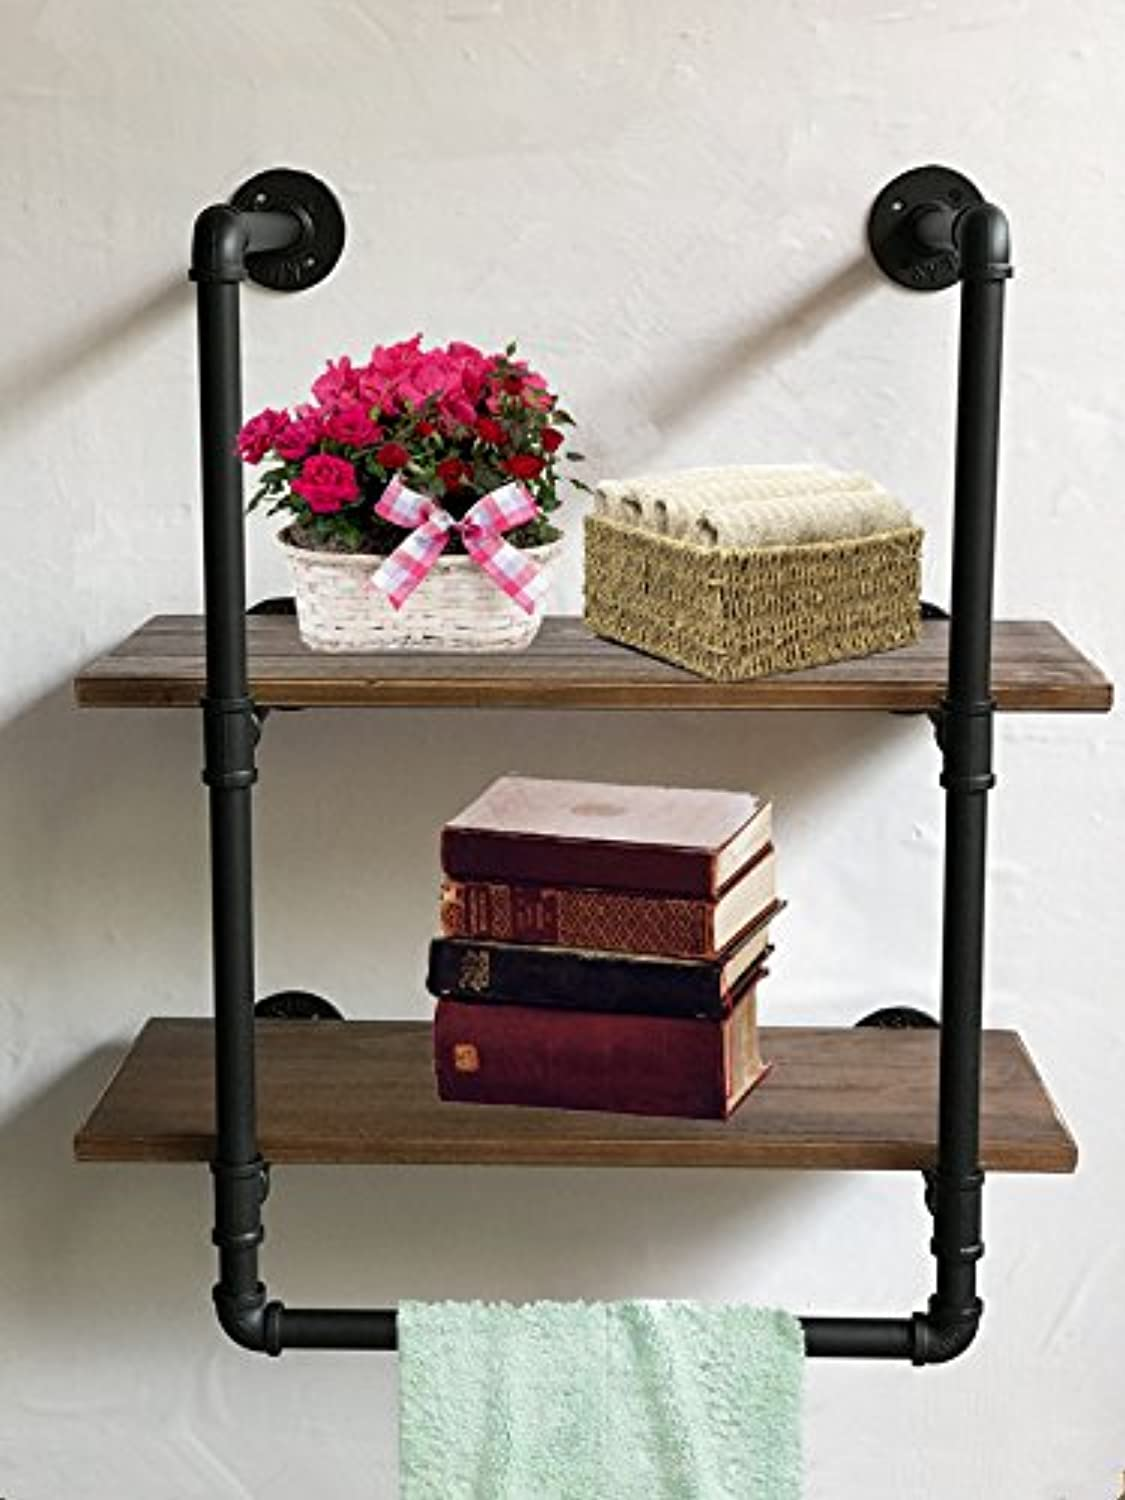 Wendy JINGQI Industrial Retro Wall Mount iron Pipe Shelf,Bathroom Wall Unit,2 tier Pipe shelves and Towel Holder,Floating Shelves,Bathroom Decor,Towel Storage, Towel rack 25cm wide